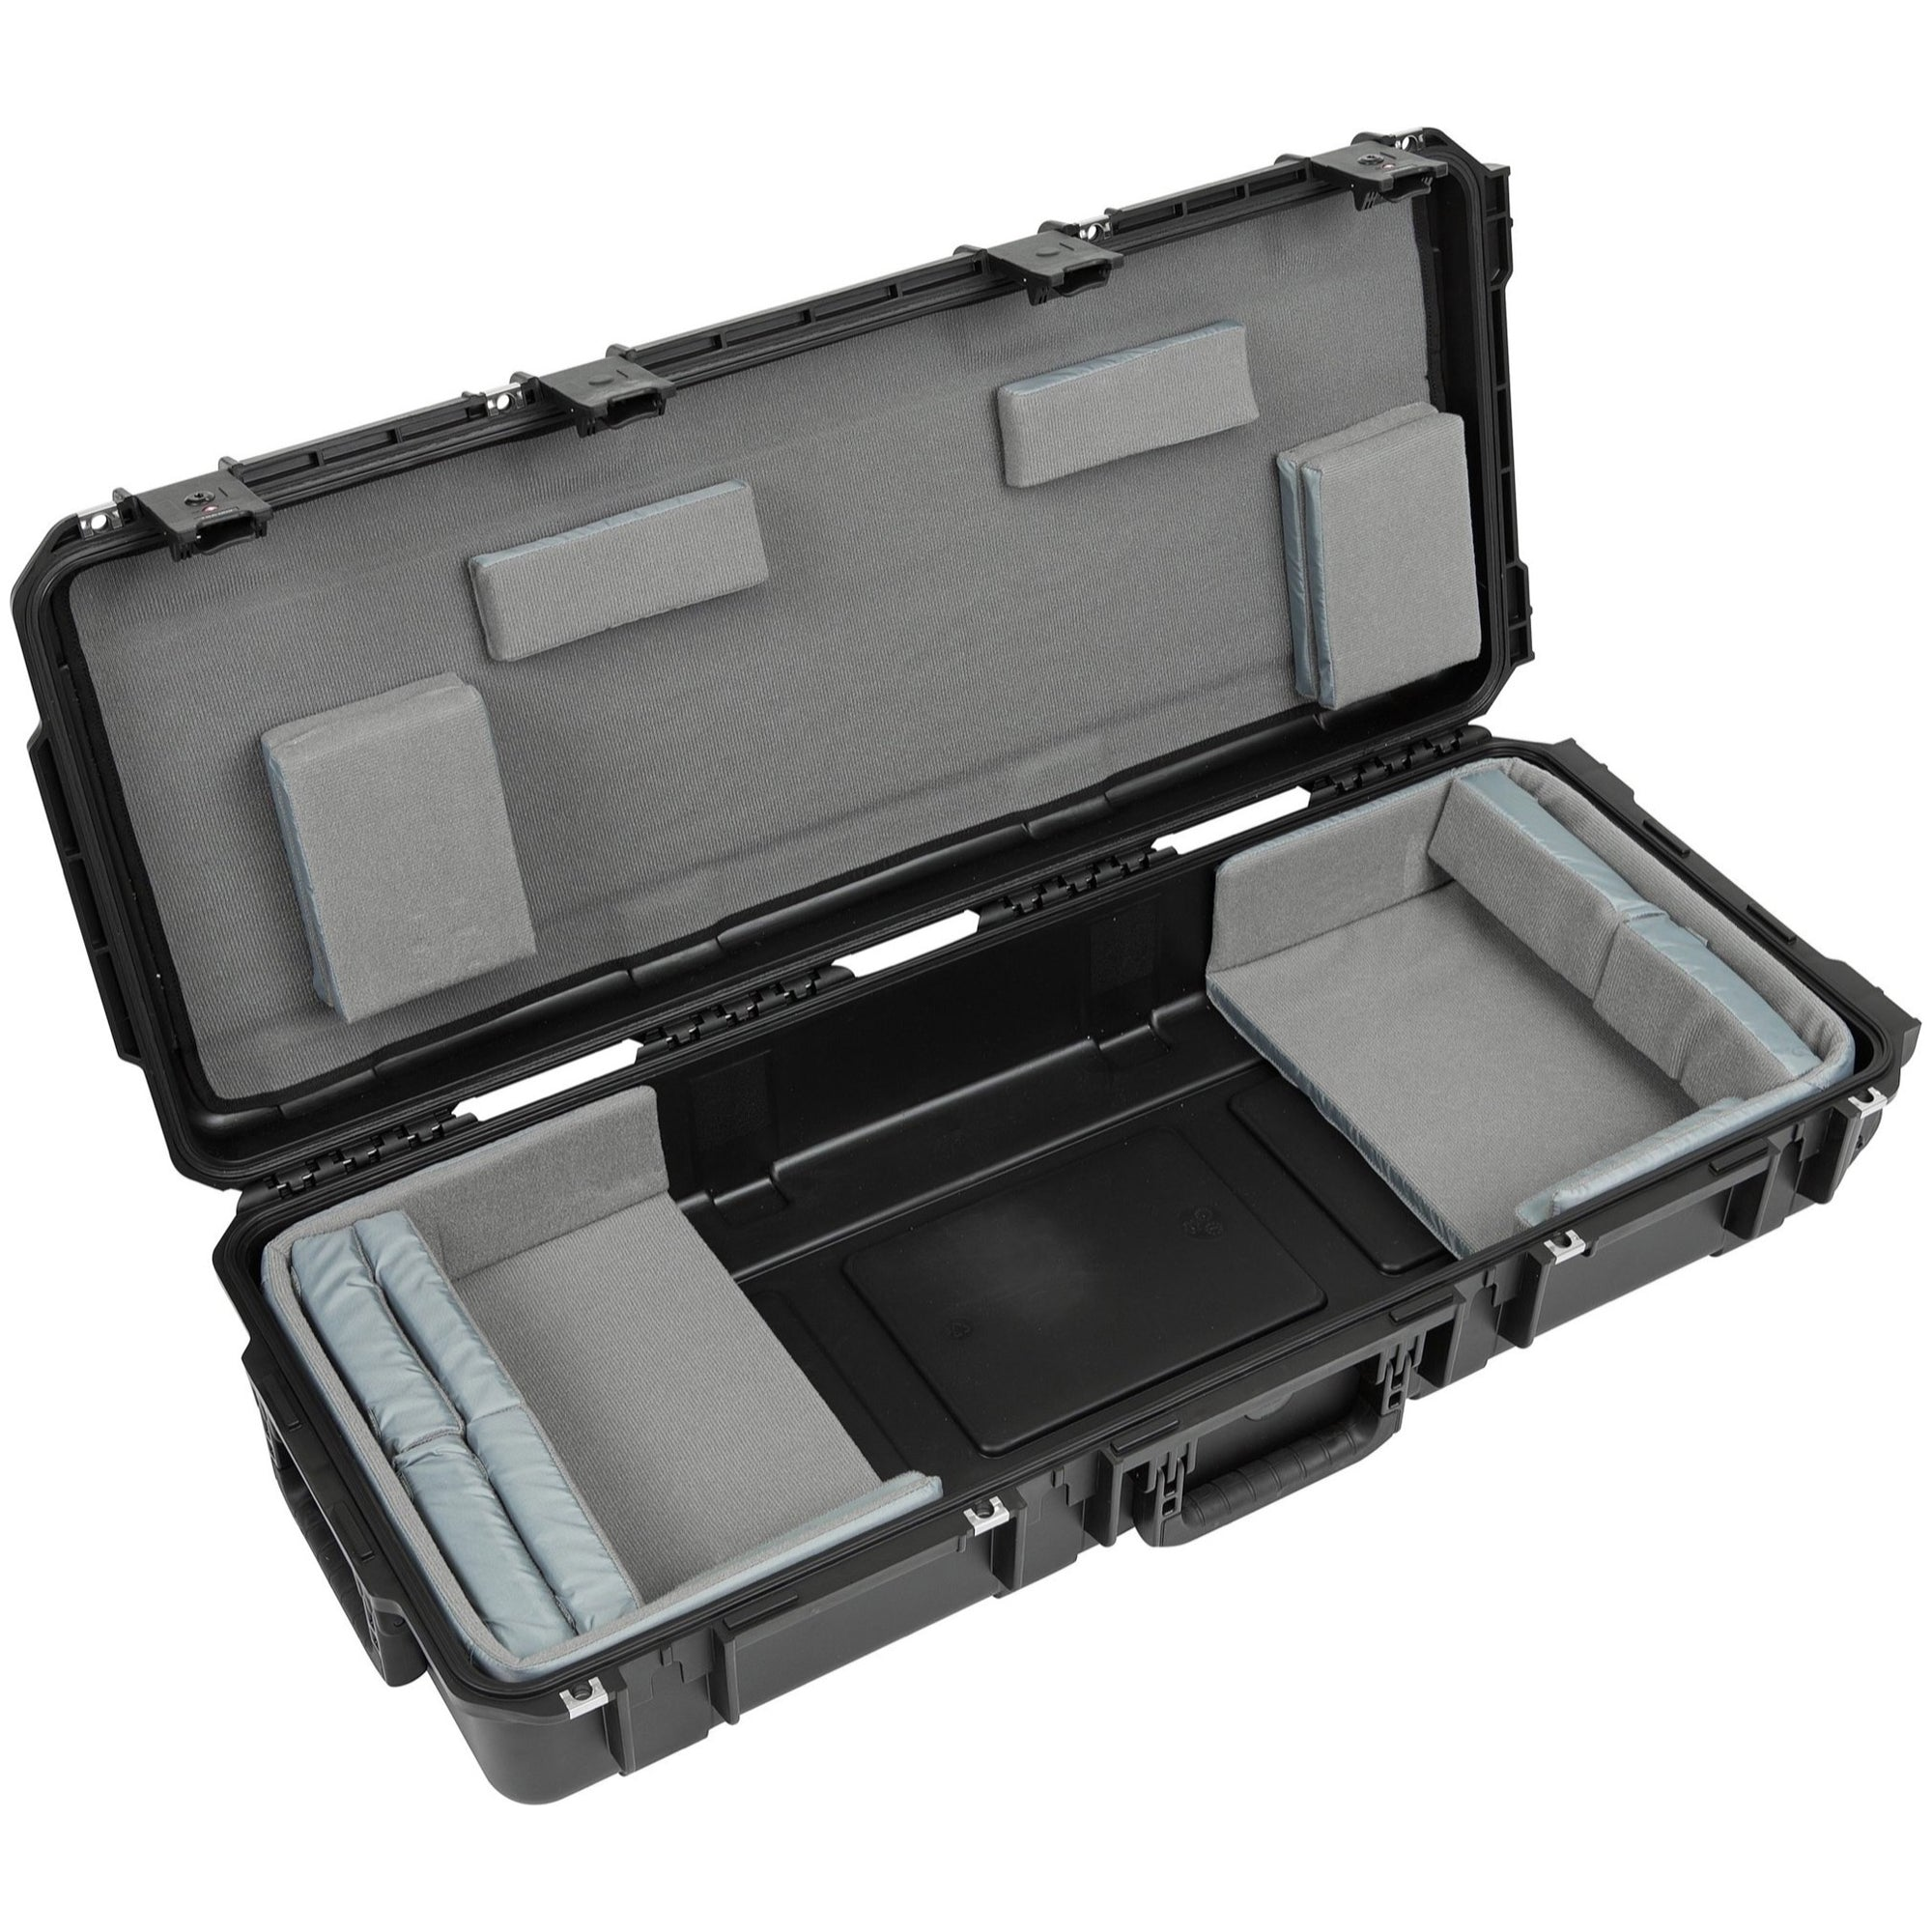 SKB 3i-3614-TKBD iSeries 49-Key Keyboard Case